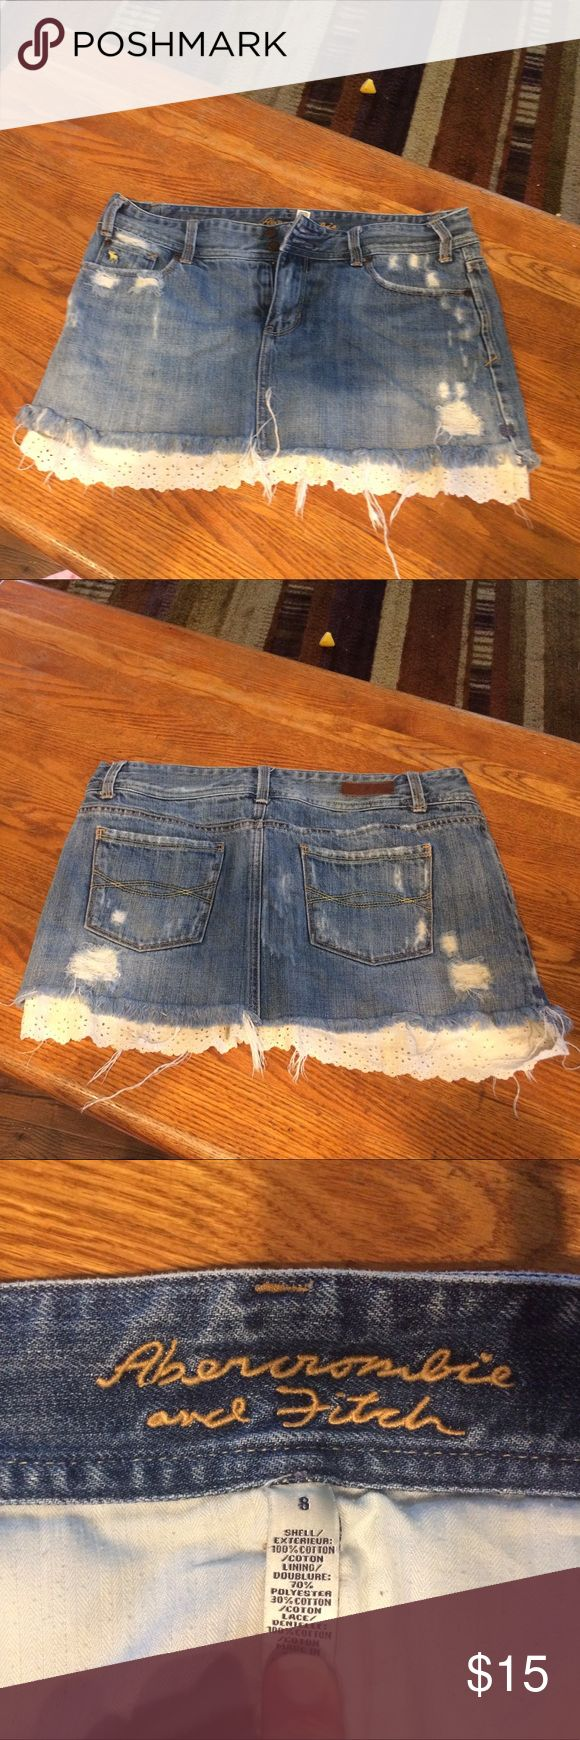 Abercrombie and Fitch distressed denim skirt. Distressed denim skirt with ruffle at bottom. Abercrombie & Fitch Skirts